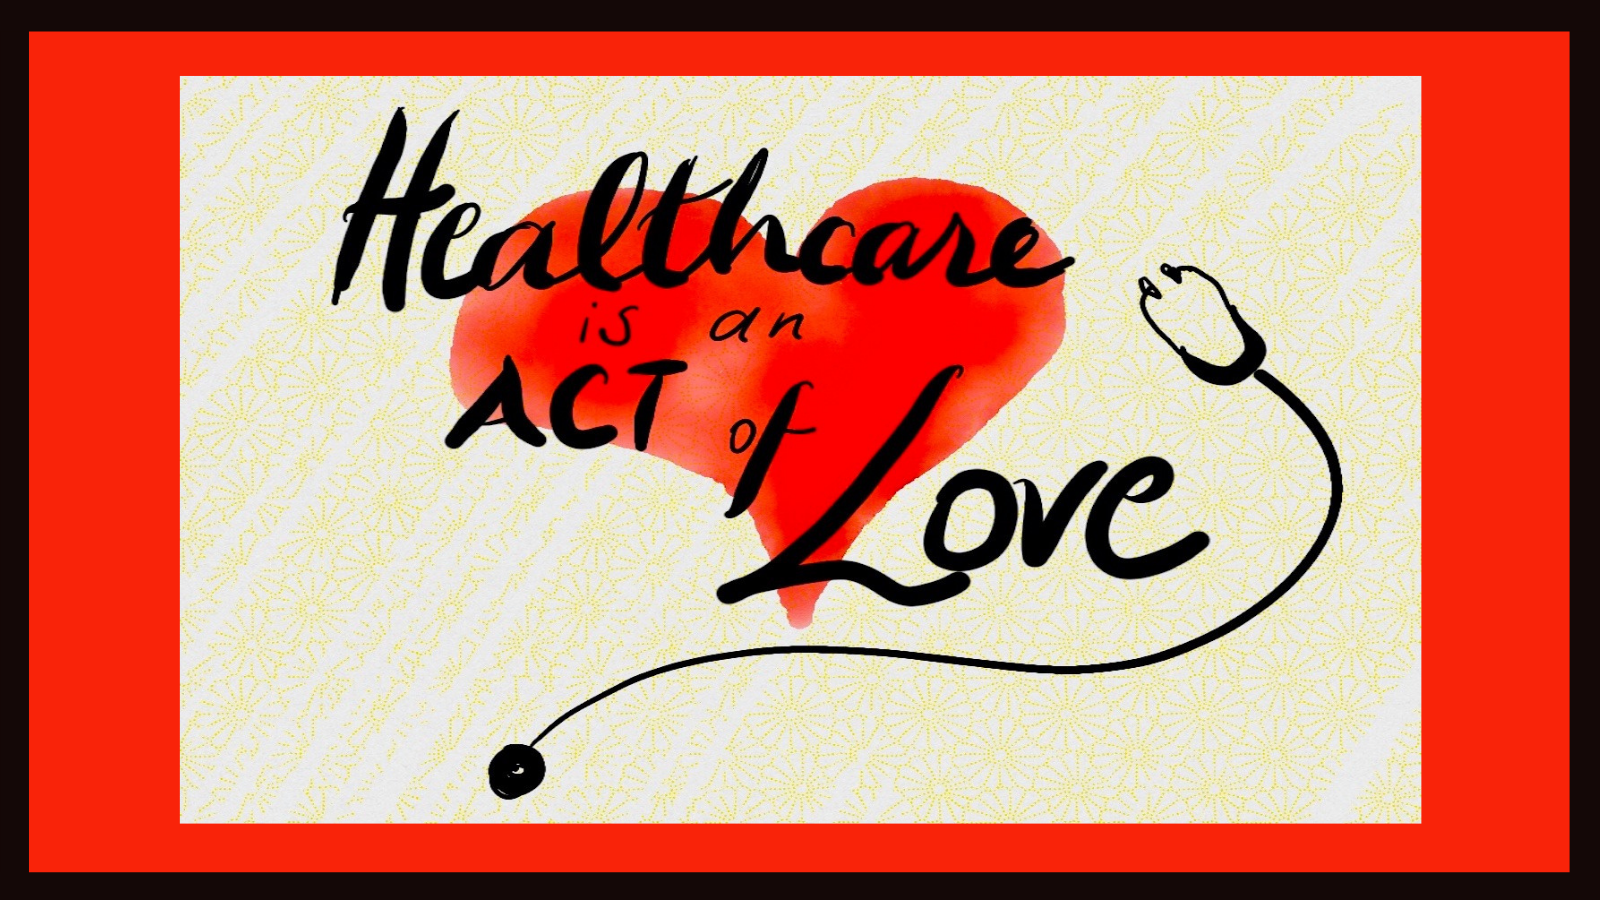 Tw_healthcare_is_an_act_of_love